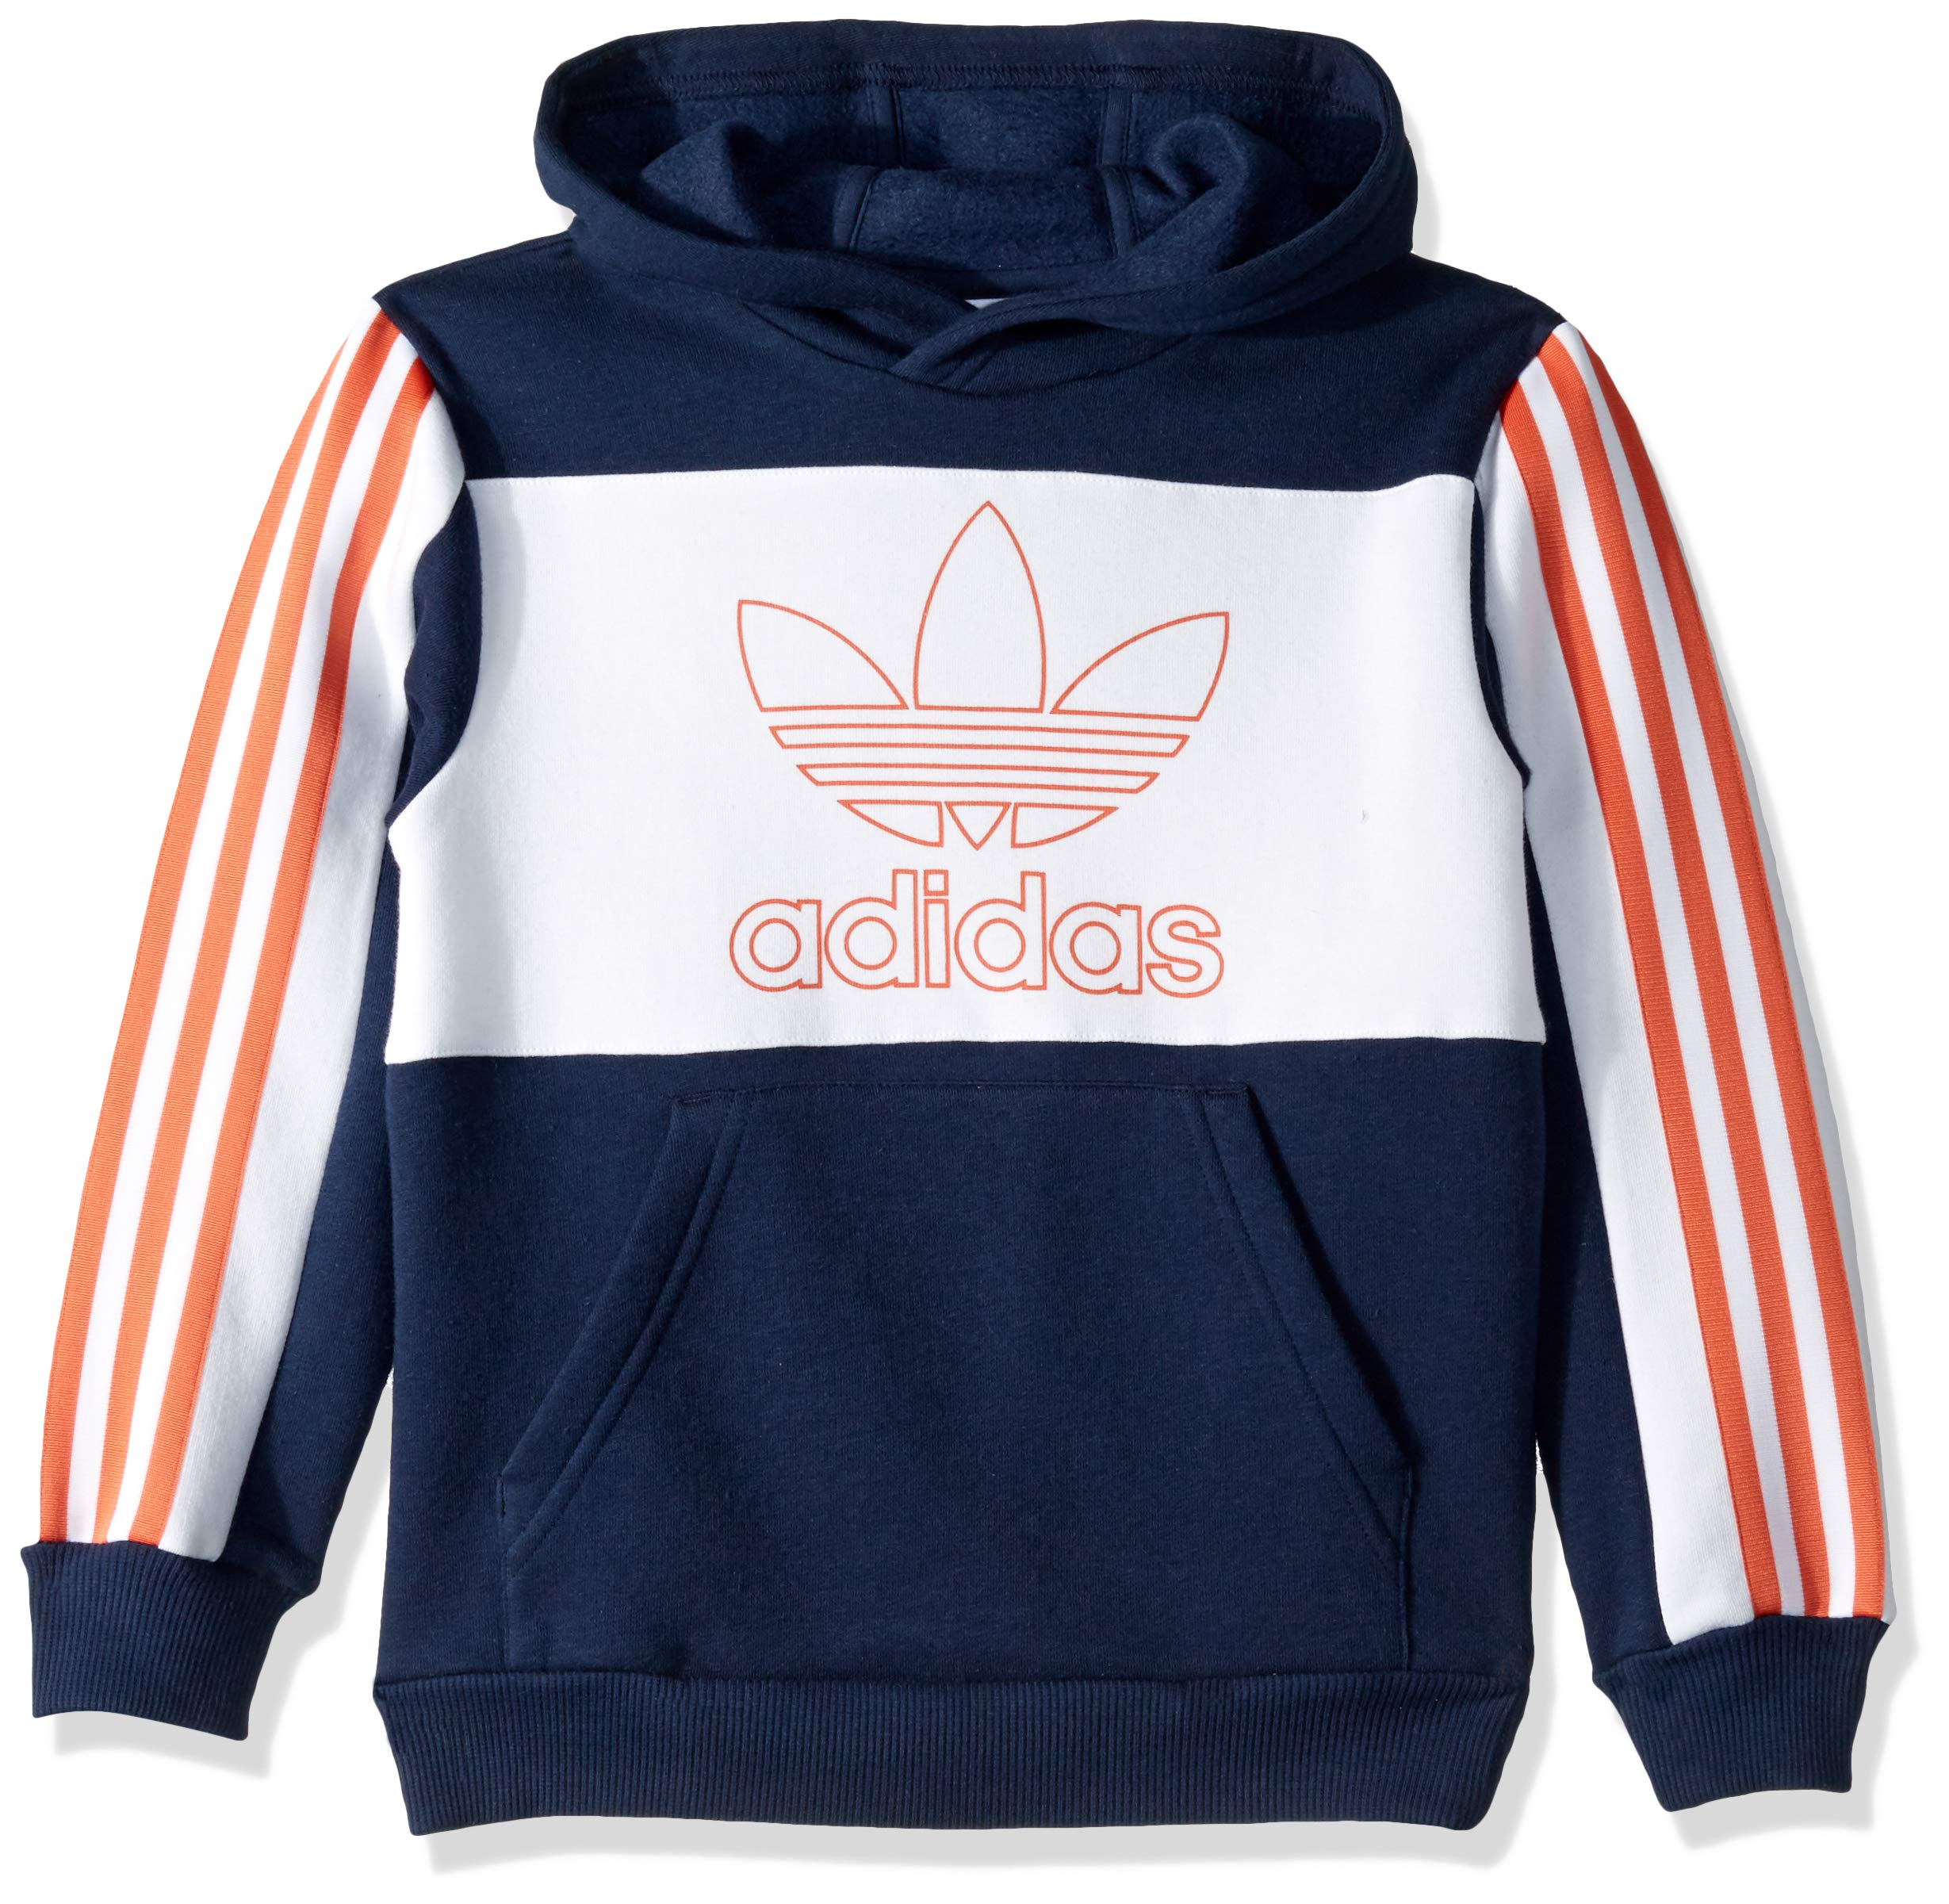 adidas Originals Boys' Big Outline Hoodie